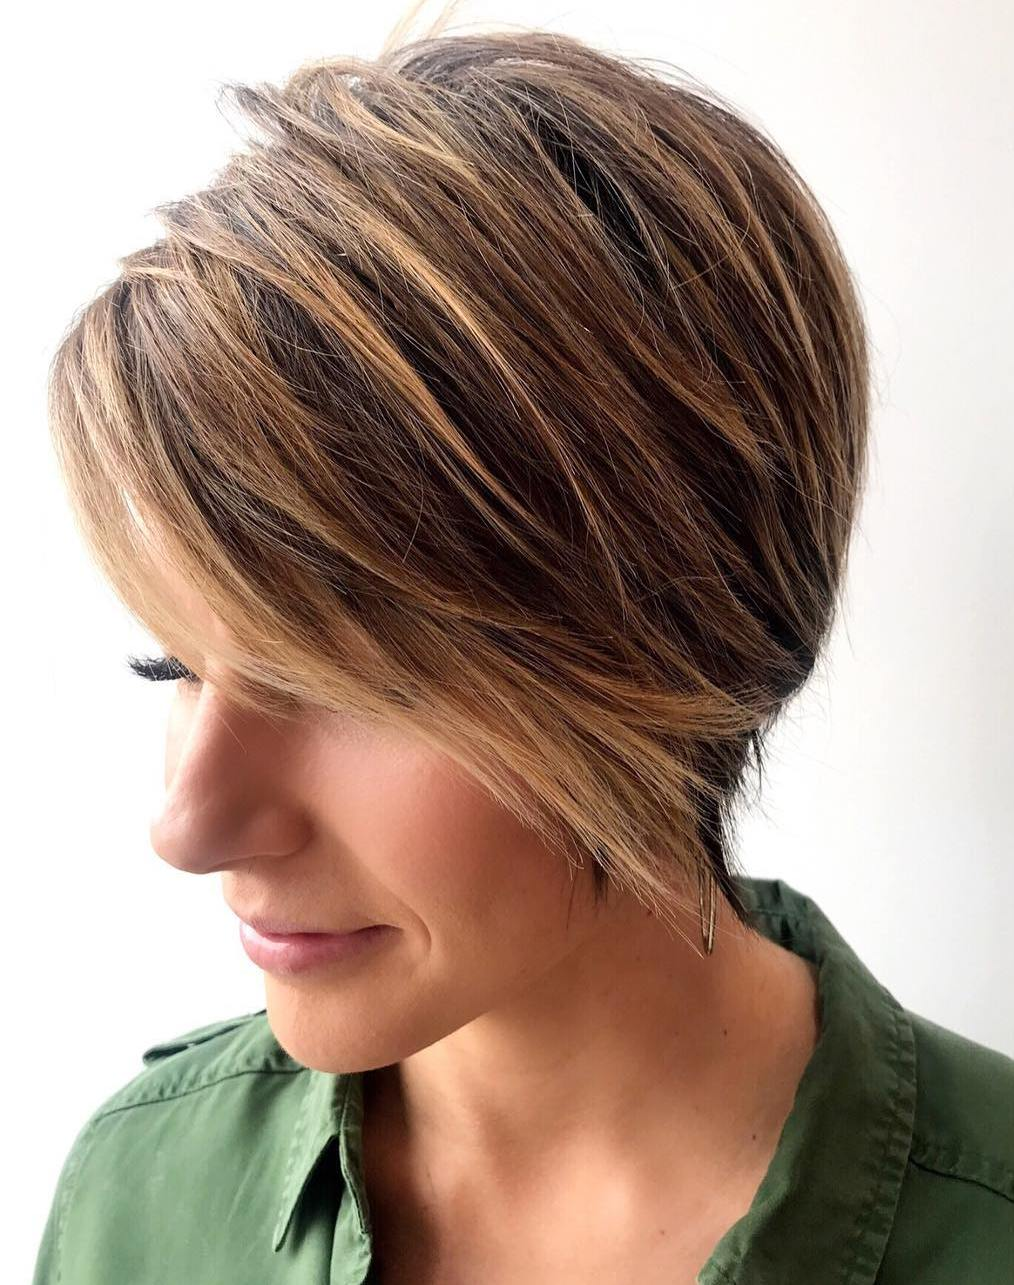 Long Pixie with Blonde Balayage Highlights